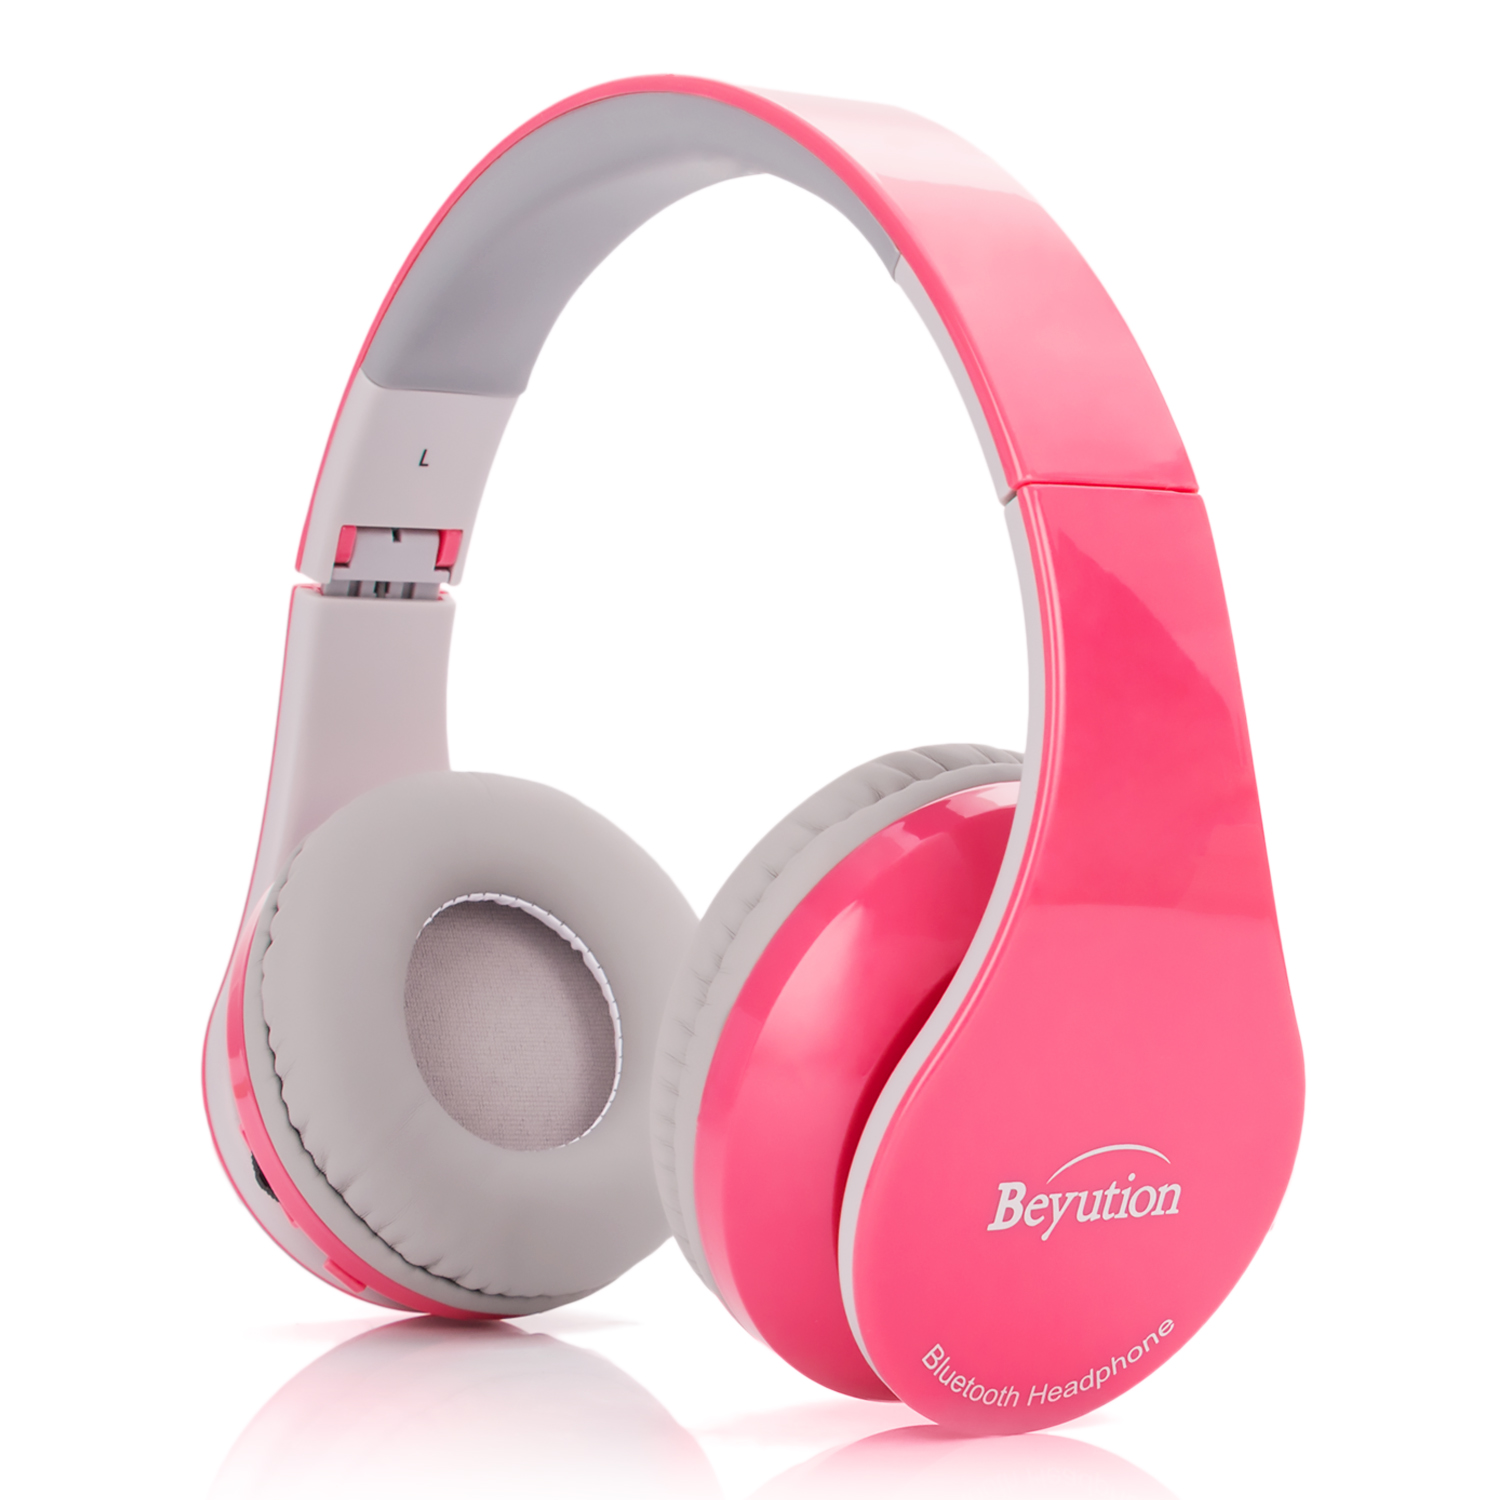 Beyution V4.1 Bluetooth Headphones Wireless Foldable Hi-fi Stereo Headphone with Micphone for Smart Phones & Tablets - Pink